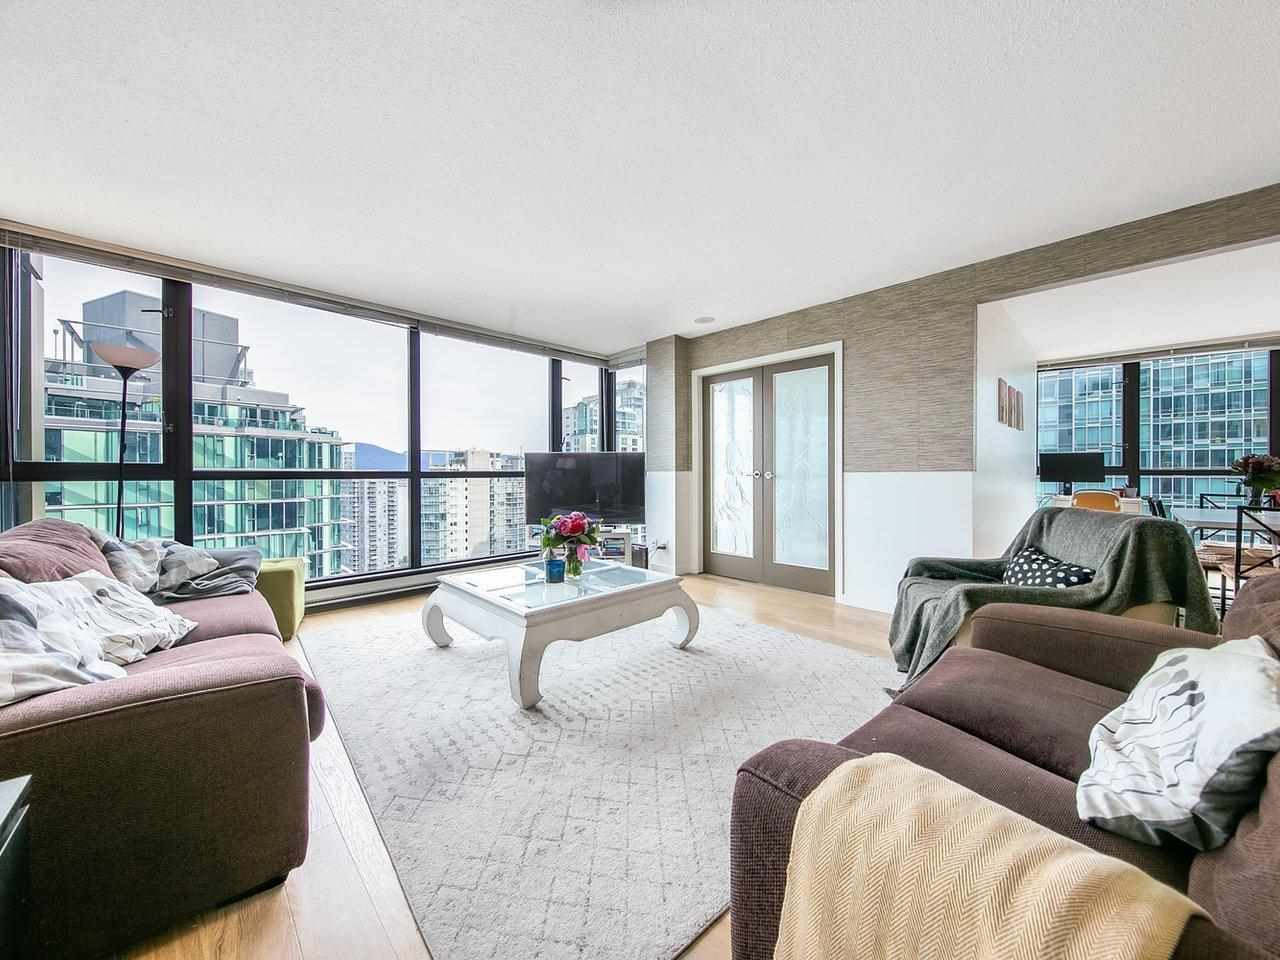 2701 1331 ALBERNI STREET - West End VW Apartment/Condo for sale, 3 Bedrooms (R2576100) - #4